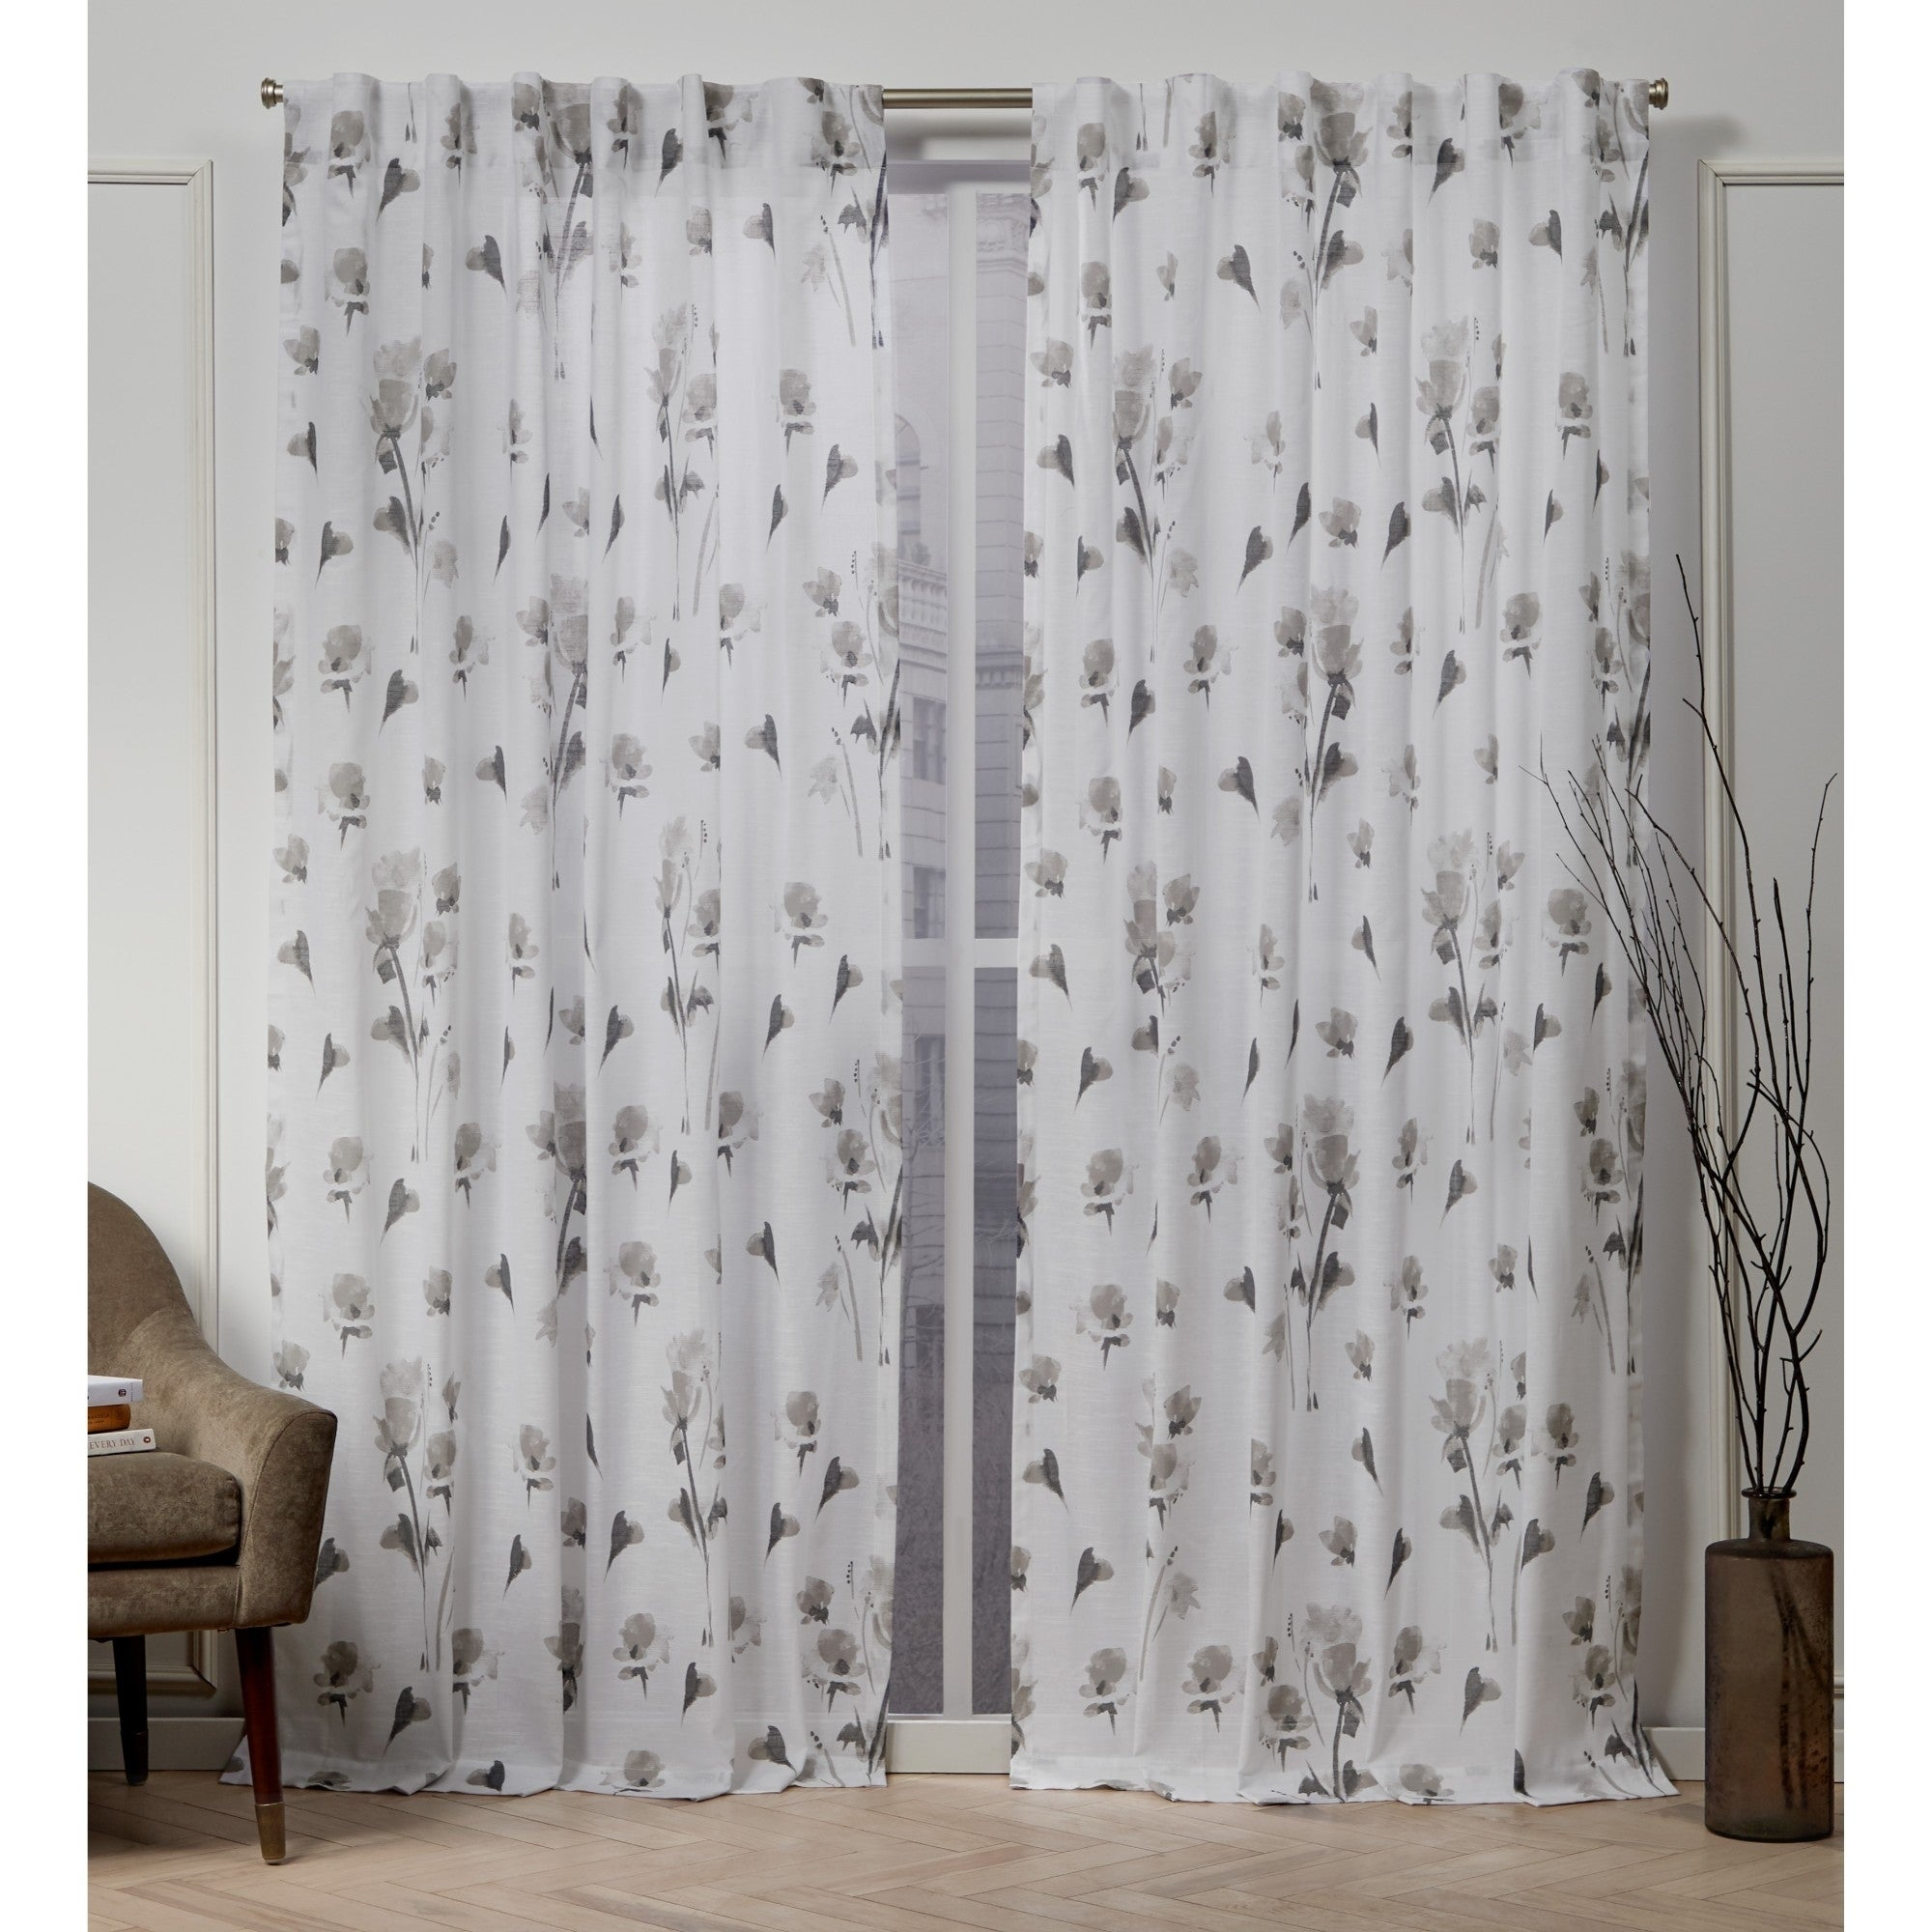 Nicole Miller La Petite Fleur Hidden Tab Top Panel Pair Throughout Tuscan Thermal Backed Blackout Curtain Panel Pairs (View 15 of 30)